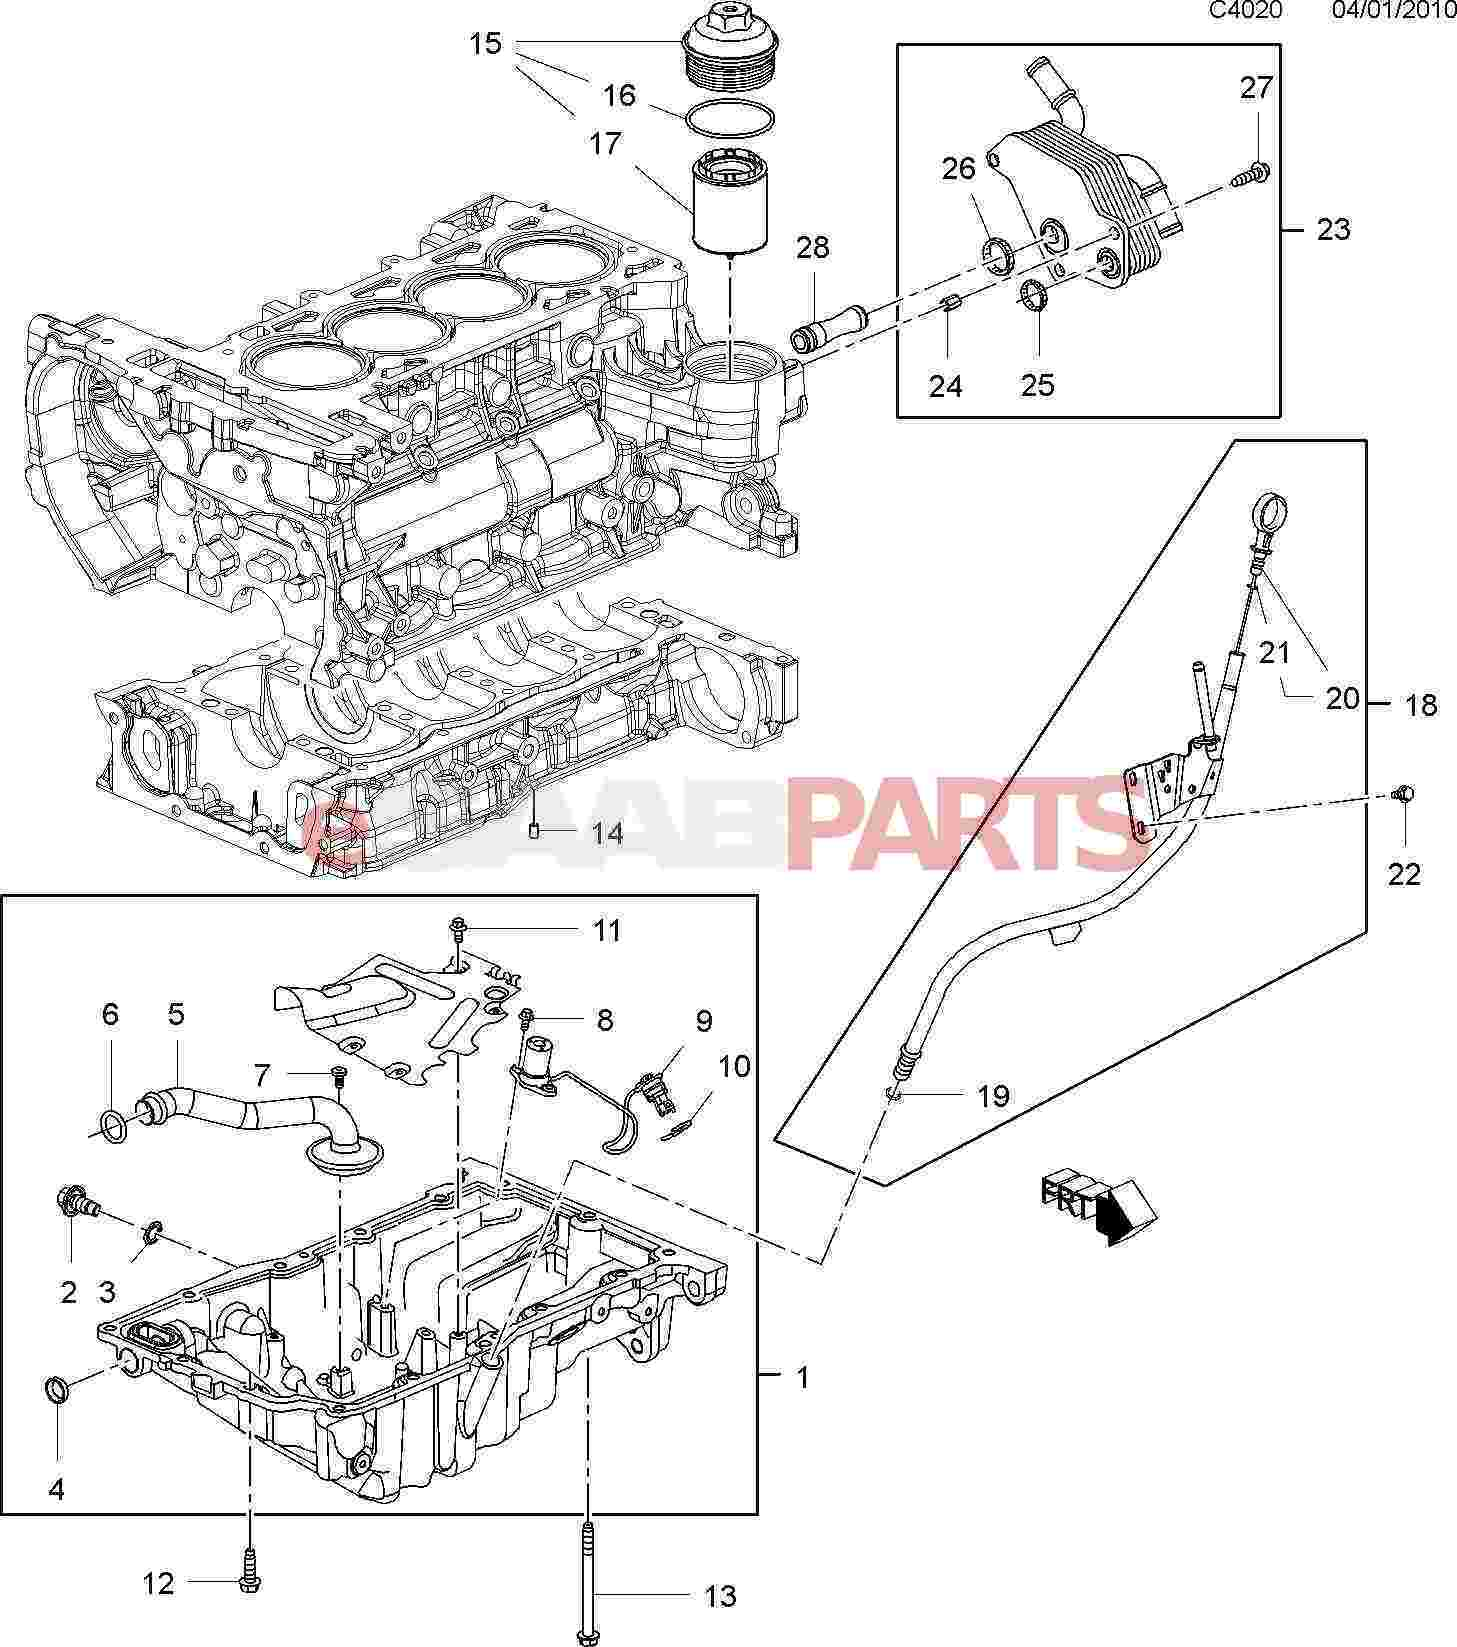 24461500 saab oil level sensor 2 0t genuine saab parts from rh esaabparts com 2003 Saab 9-3 Fuse Box Diagram 1997 Saab 900 Amplifier Wiring